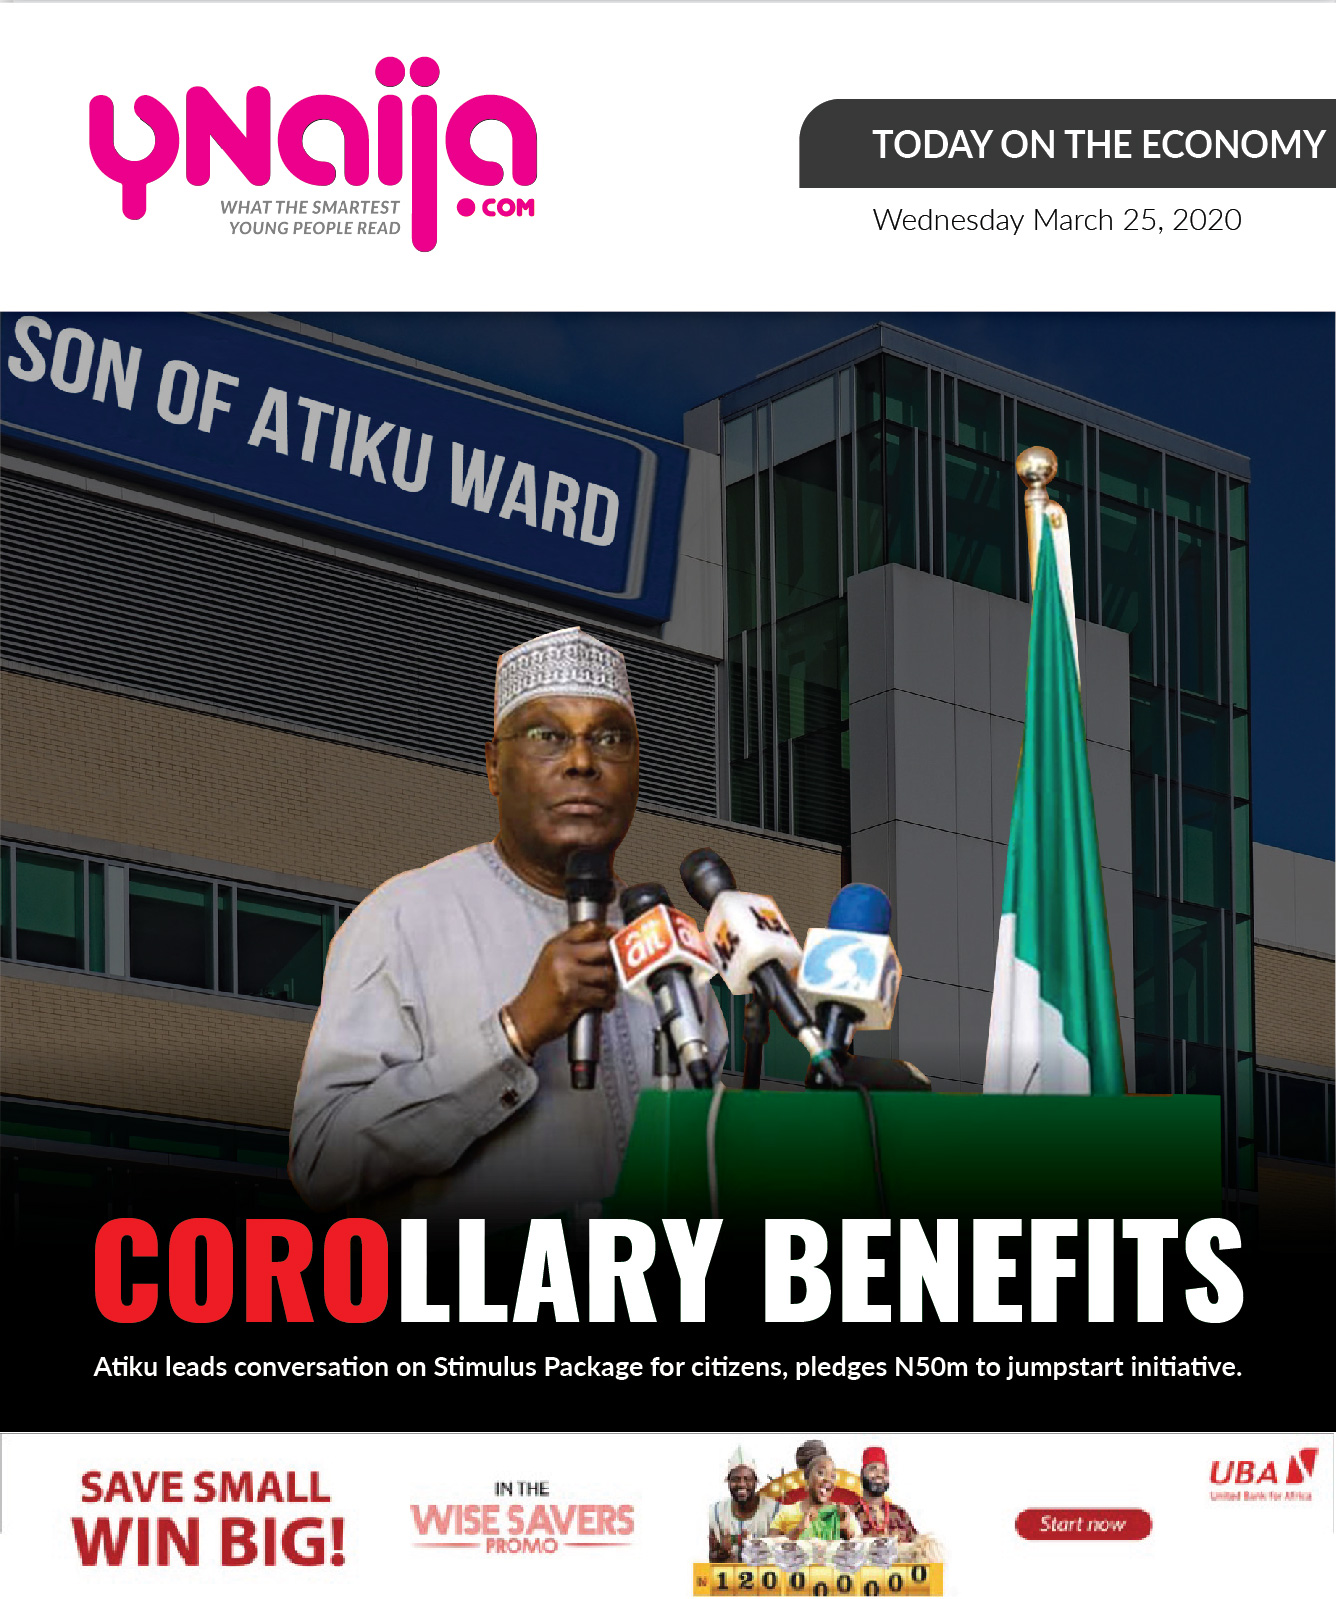 Do we have a new President or what's up with this new memo? | The #YNaijaCover » YNaija